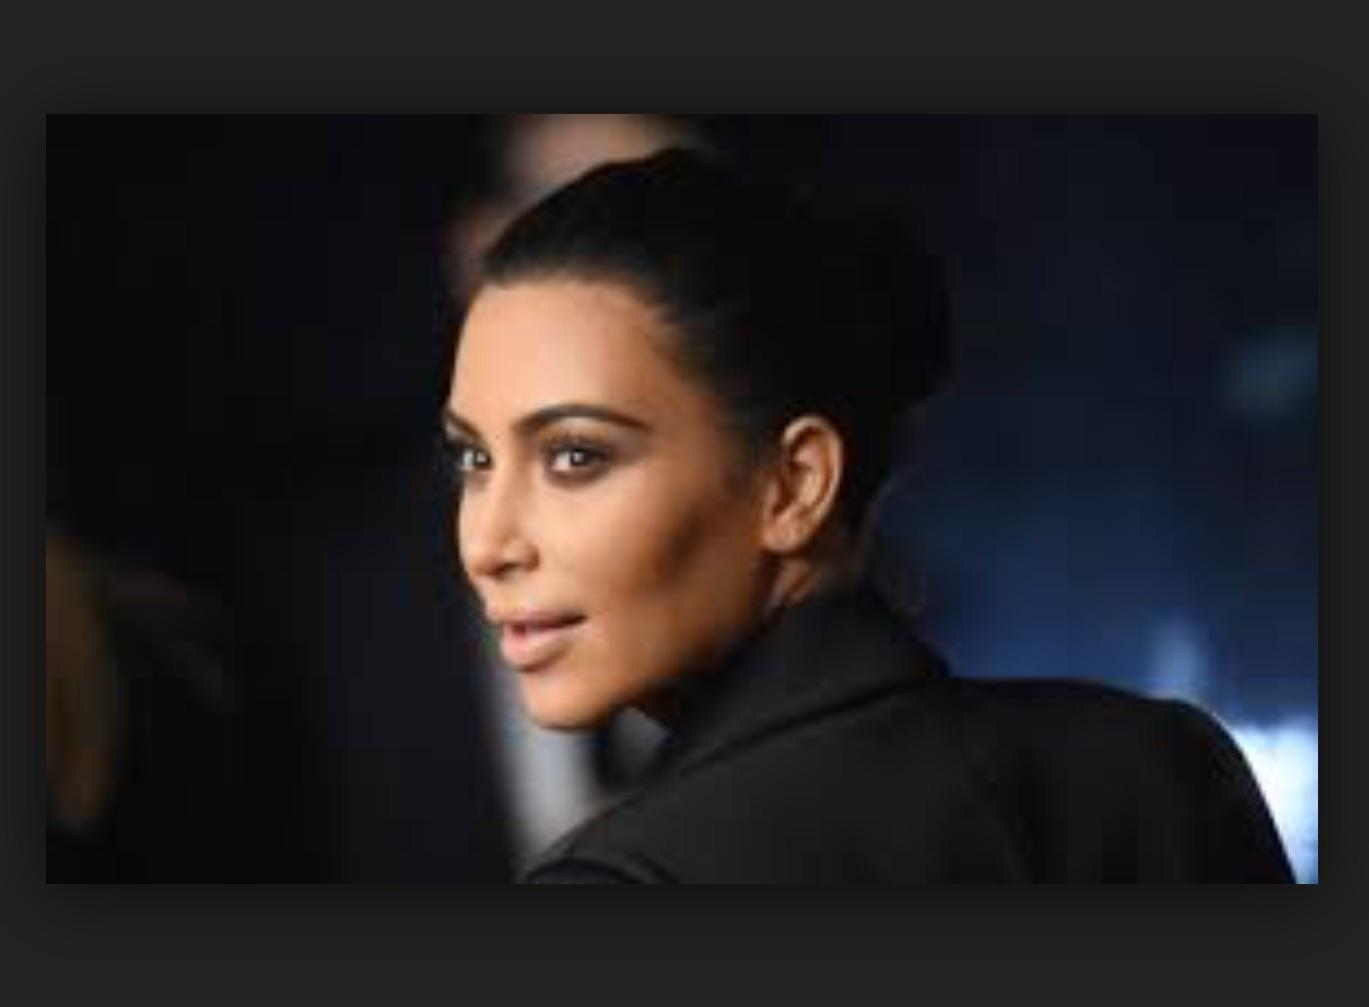 could you be related to Kim Kardashian?